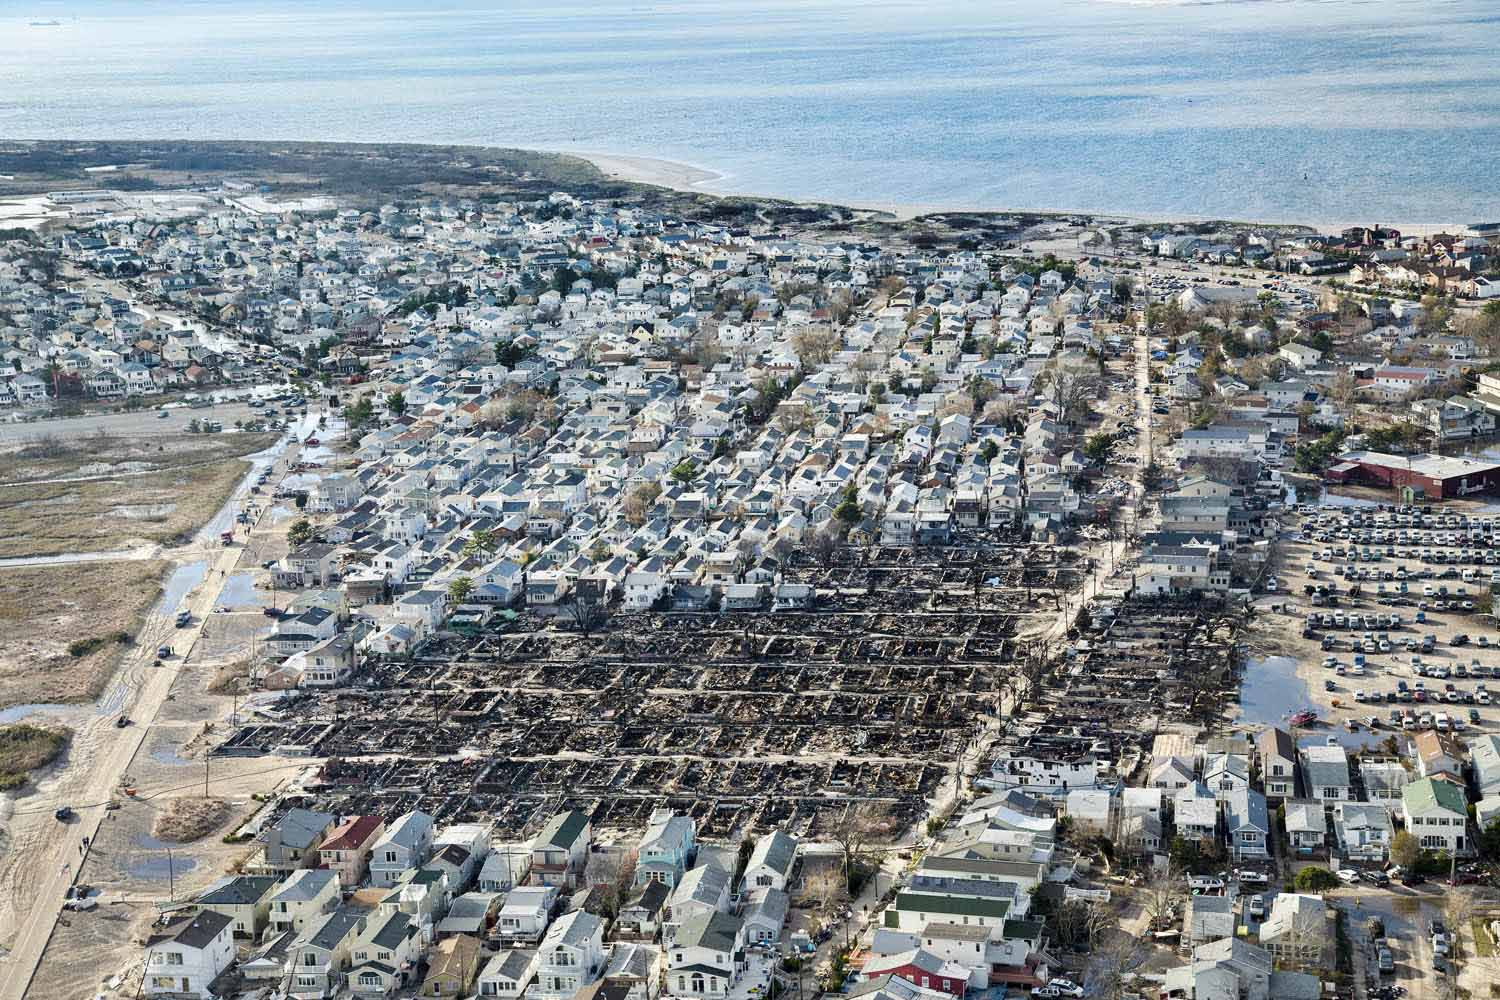 On the night Sandy made landfall, a fire swept through this community on the tip of the Rockaway Peninsula, consuming more than 100 homes, Breezy Point, N.Y., 2012